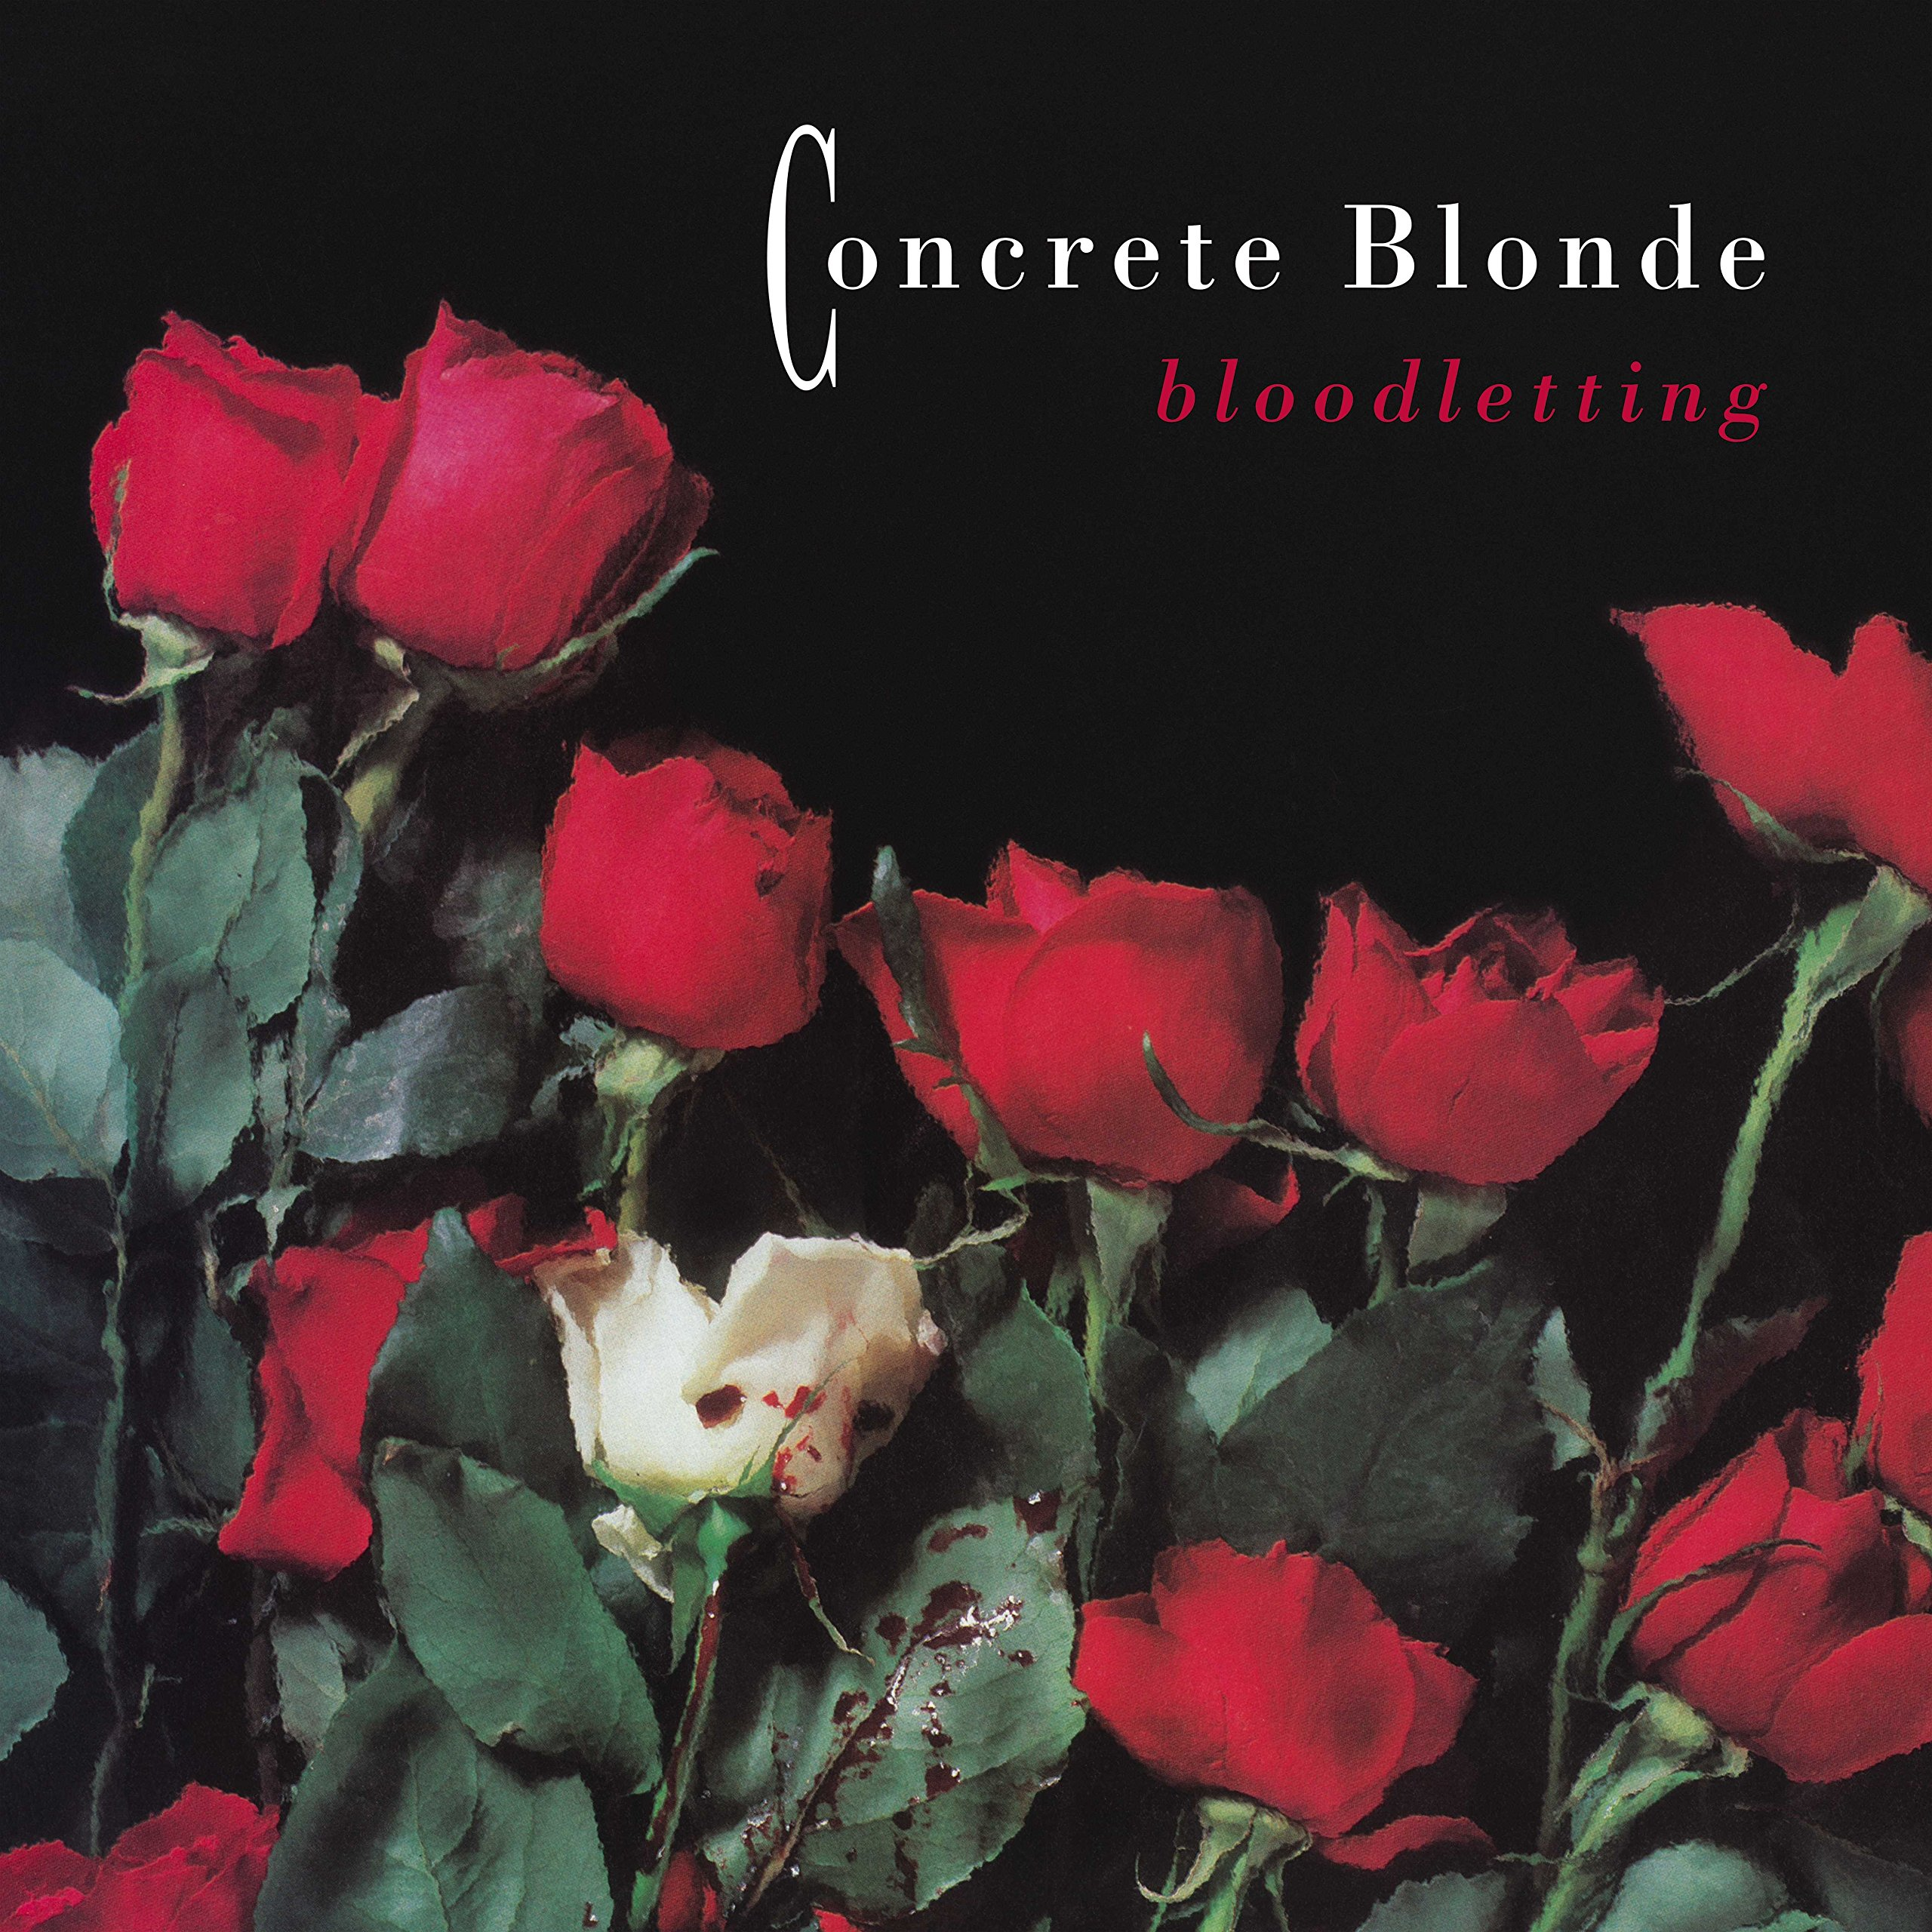 Concrete Blonde - Bloodletting (LP Vinyl)